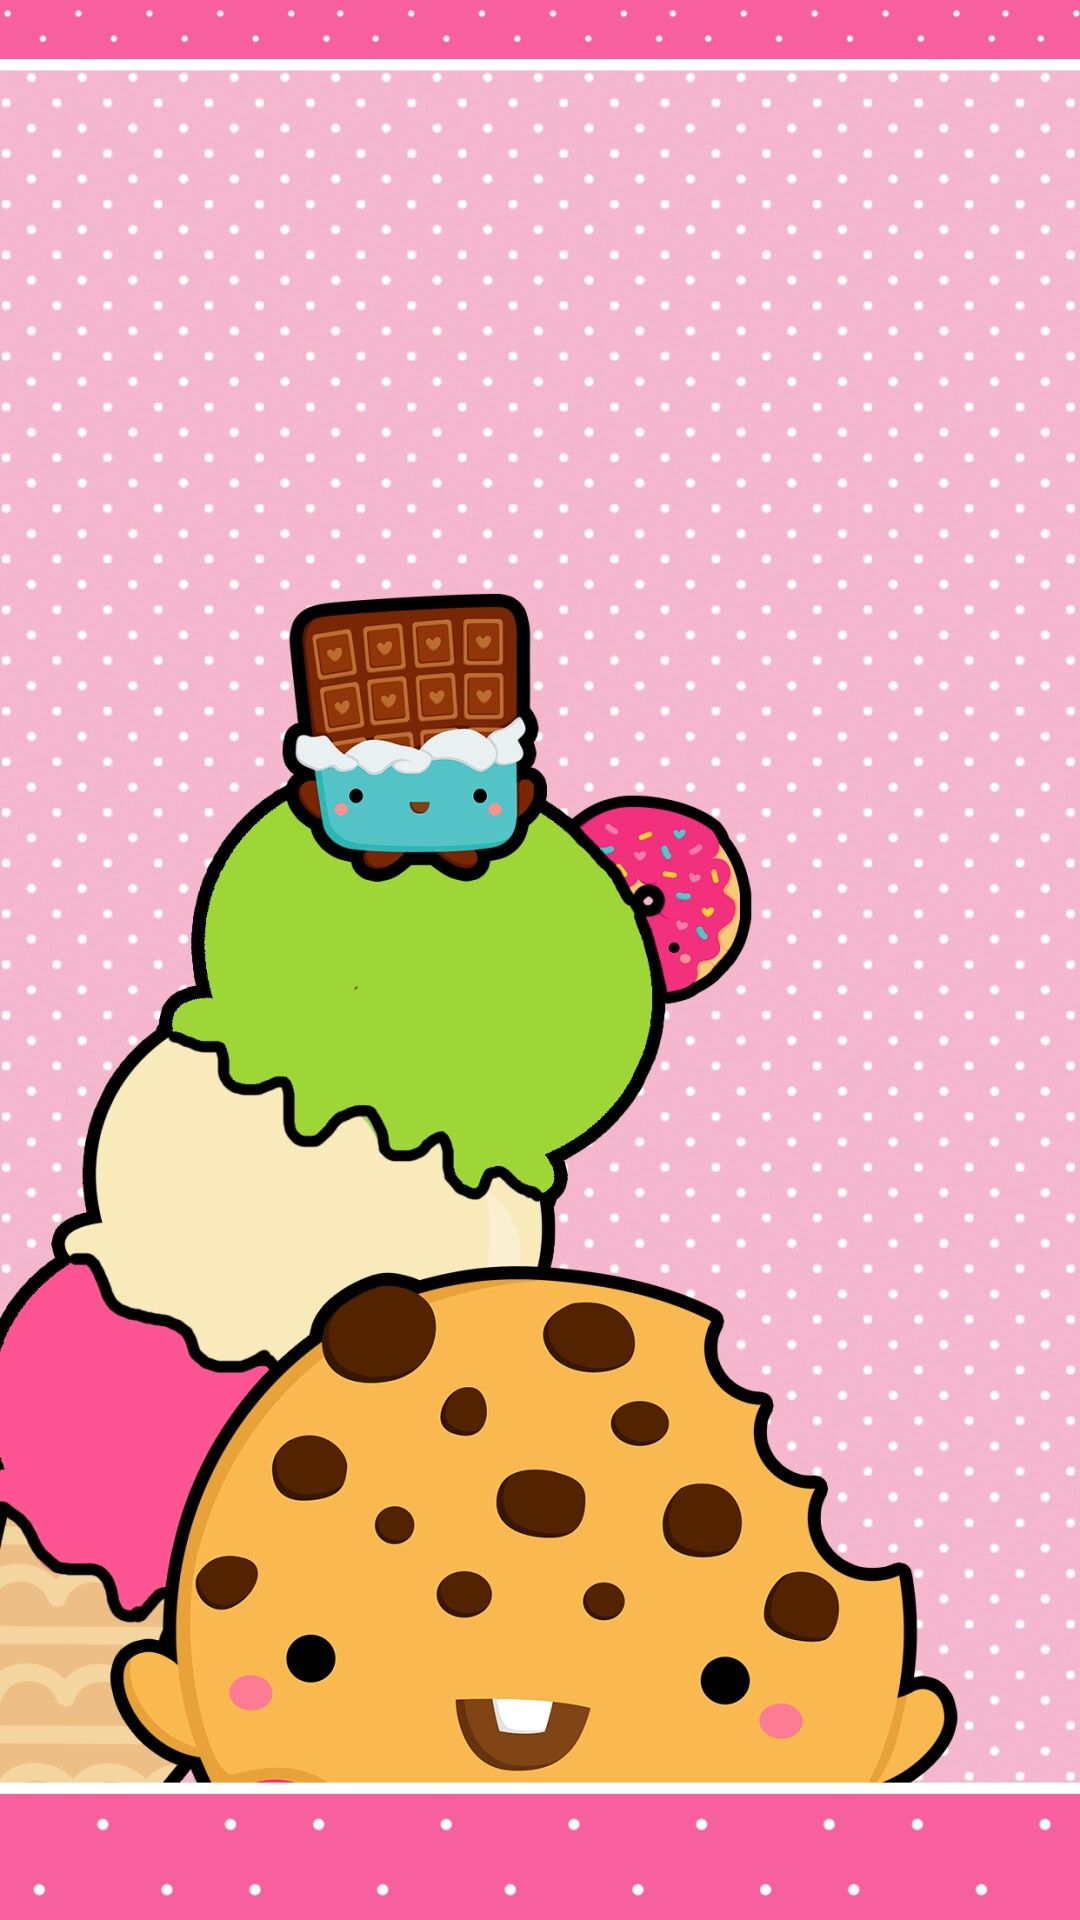 iPhone Wall tjn Free android wallpaper, Download cute